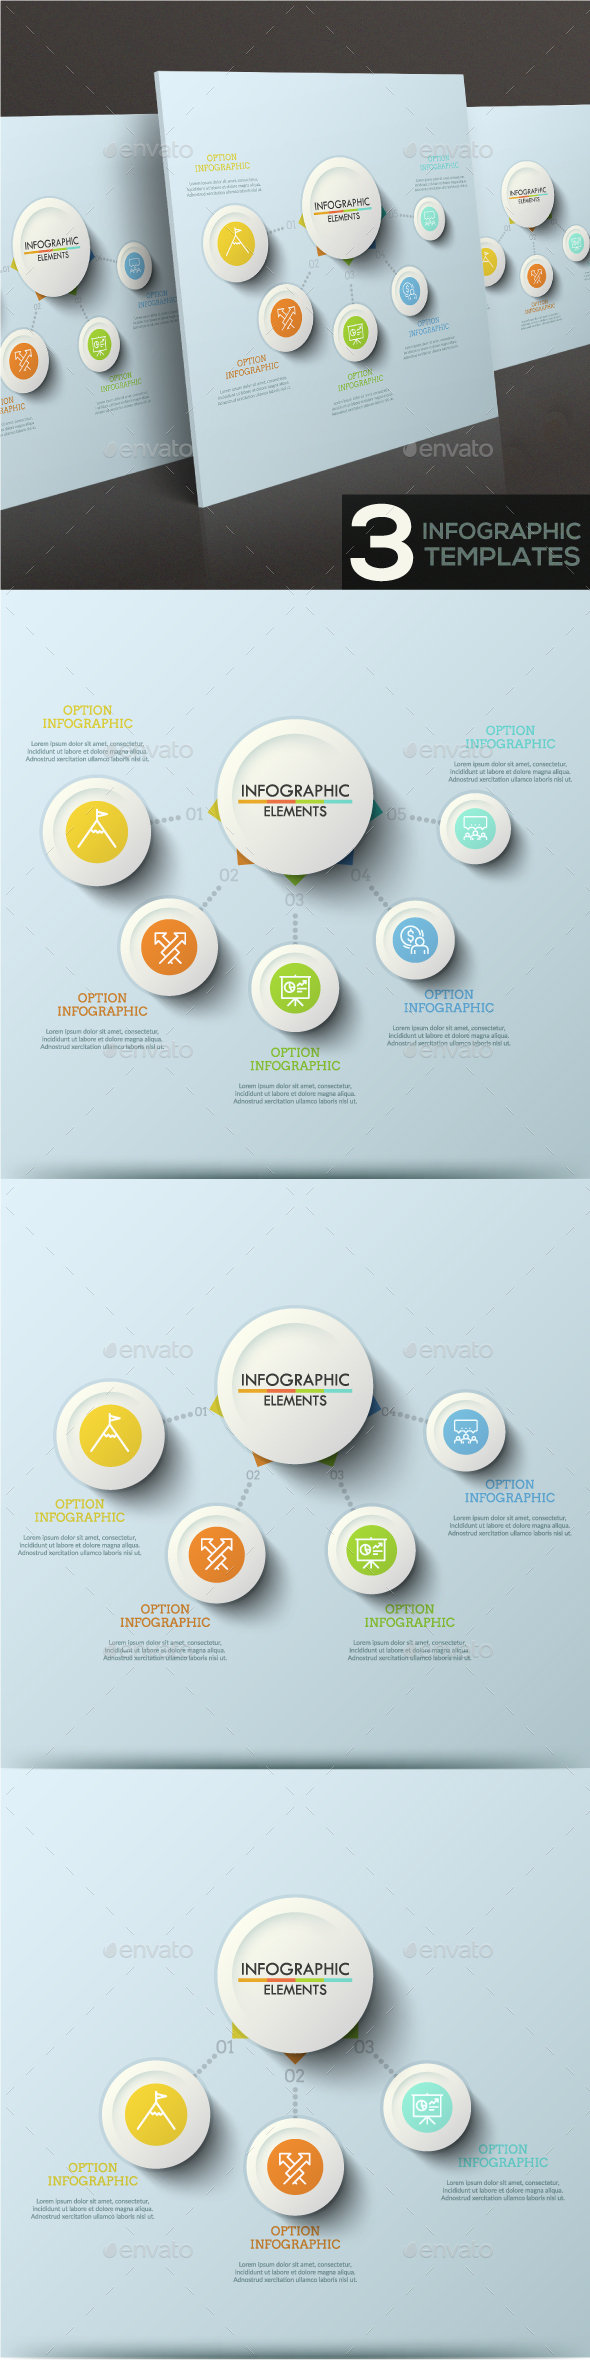 Modern Infographic Connection Template (3 Items) - Infographics